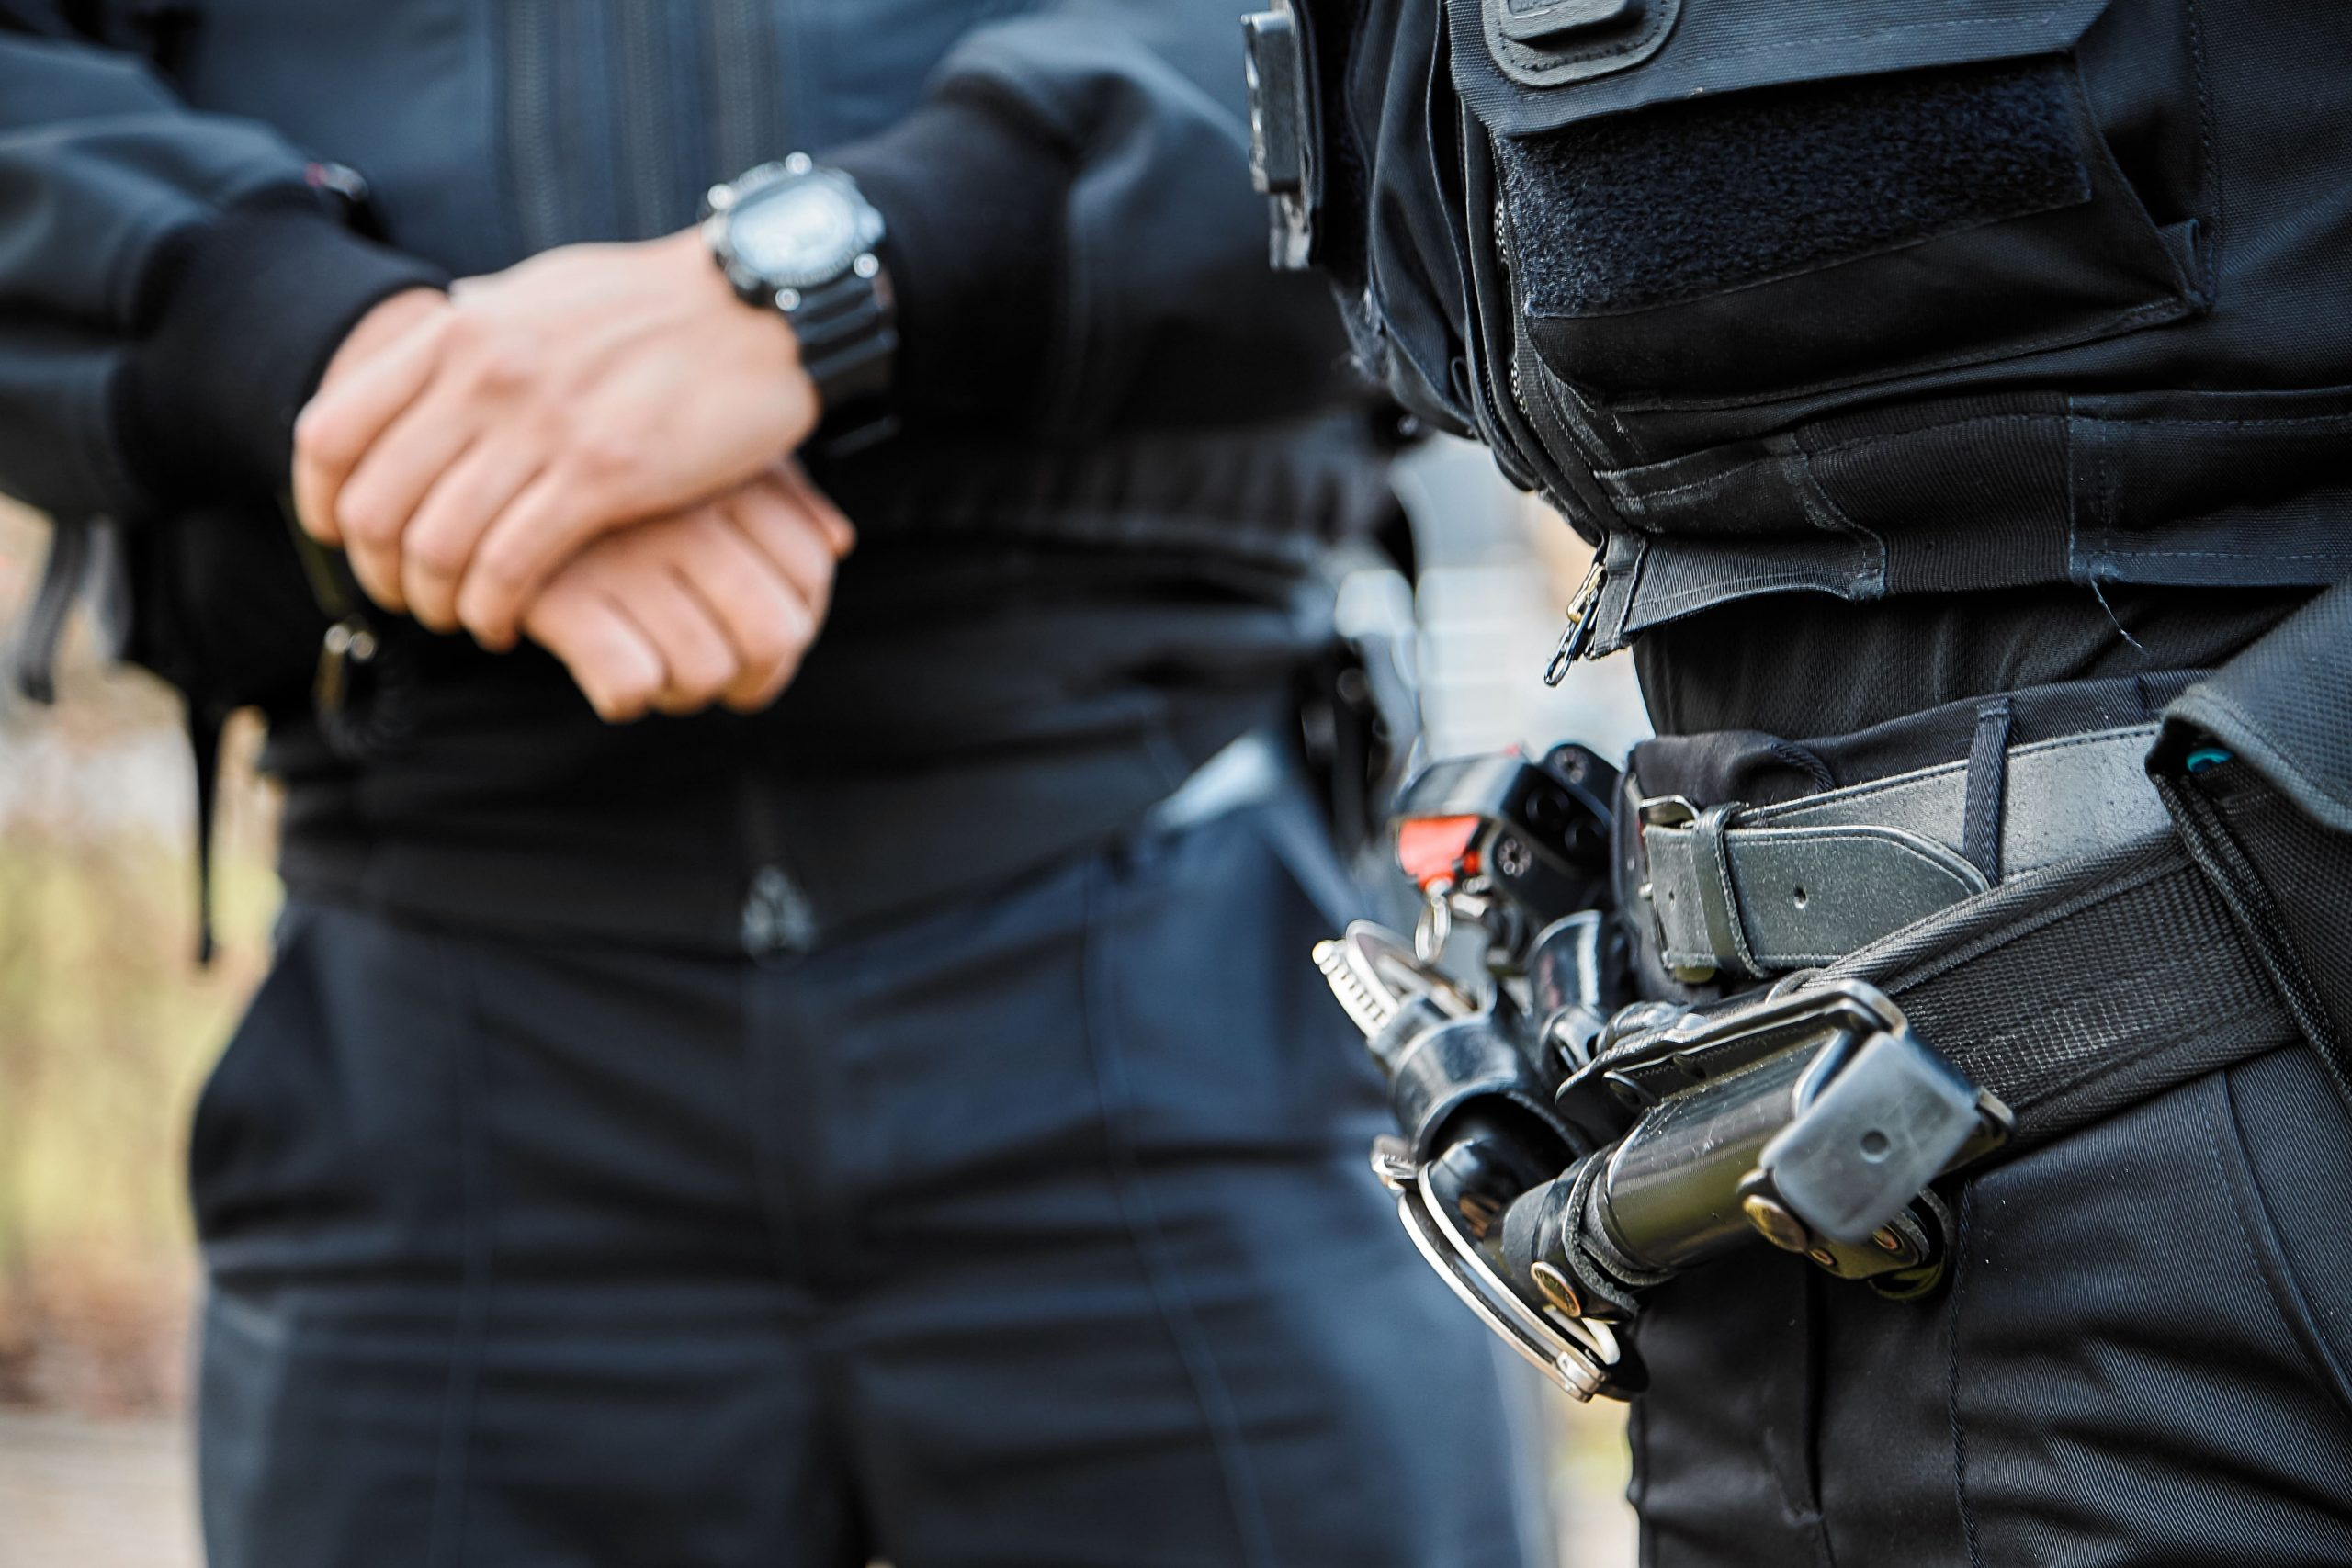 Frontline Officers Risk Lacking Suitable Kit At Protests